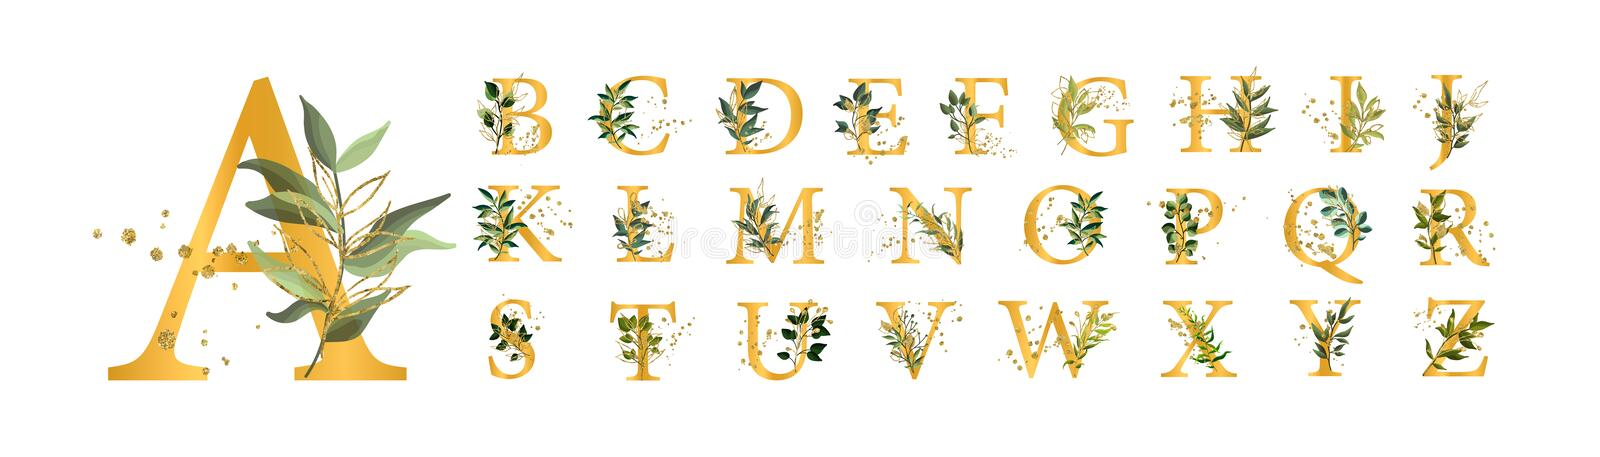 Golden floral alphabet font uppercase letters with flowers leaves gold splatters royalty free illustration